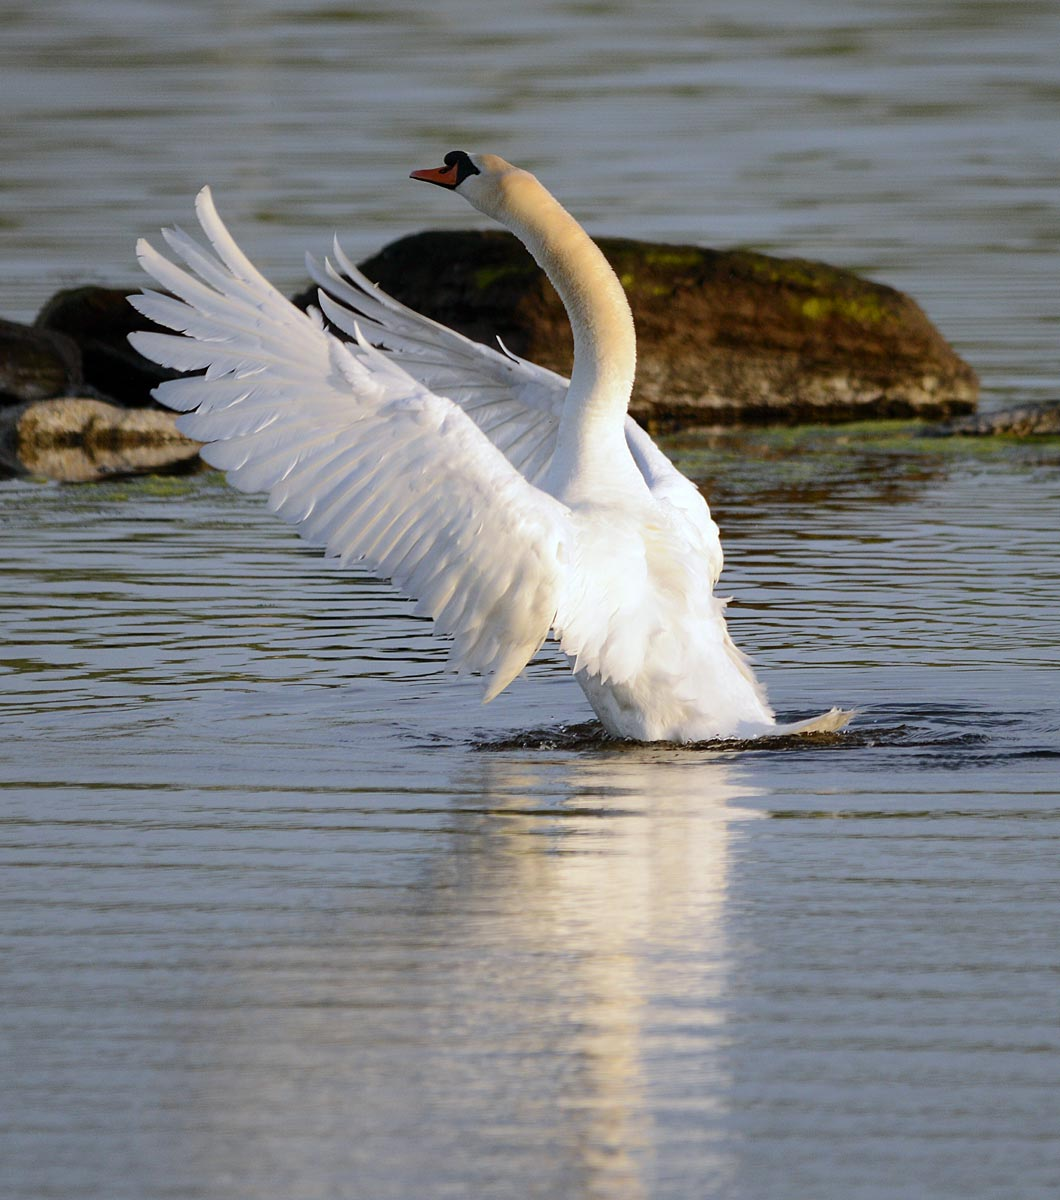 In a flap. One of the Stenness loch swan population.